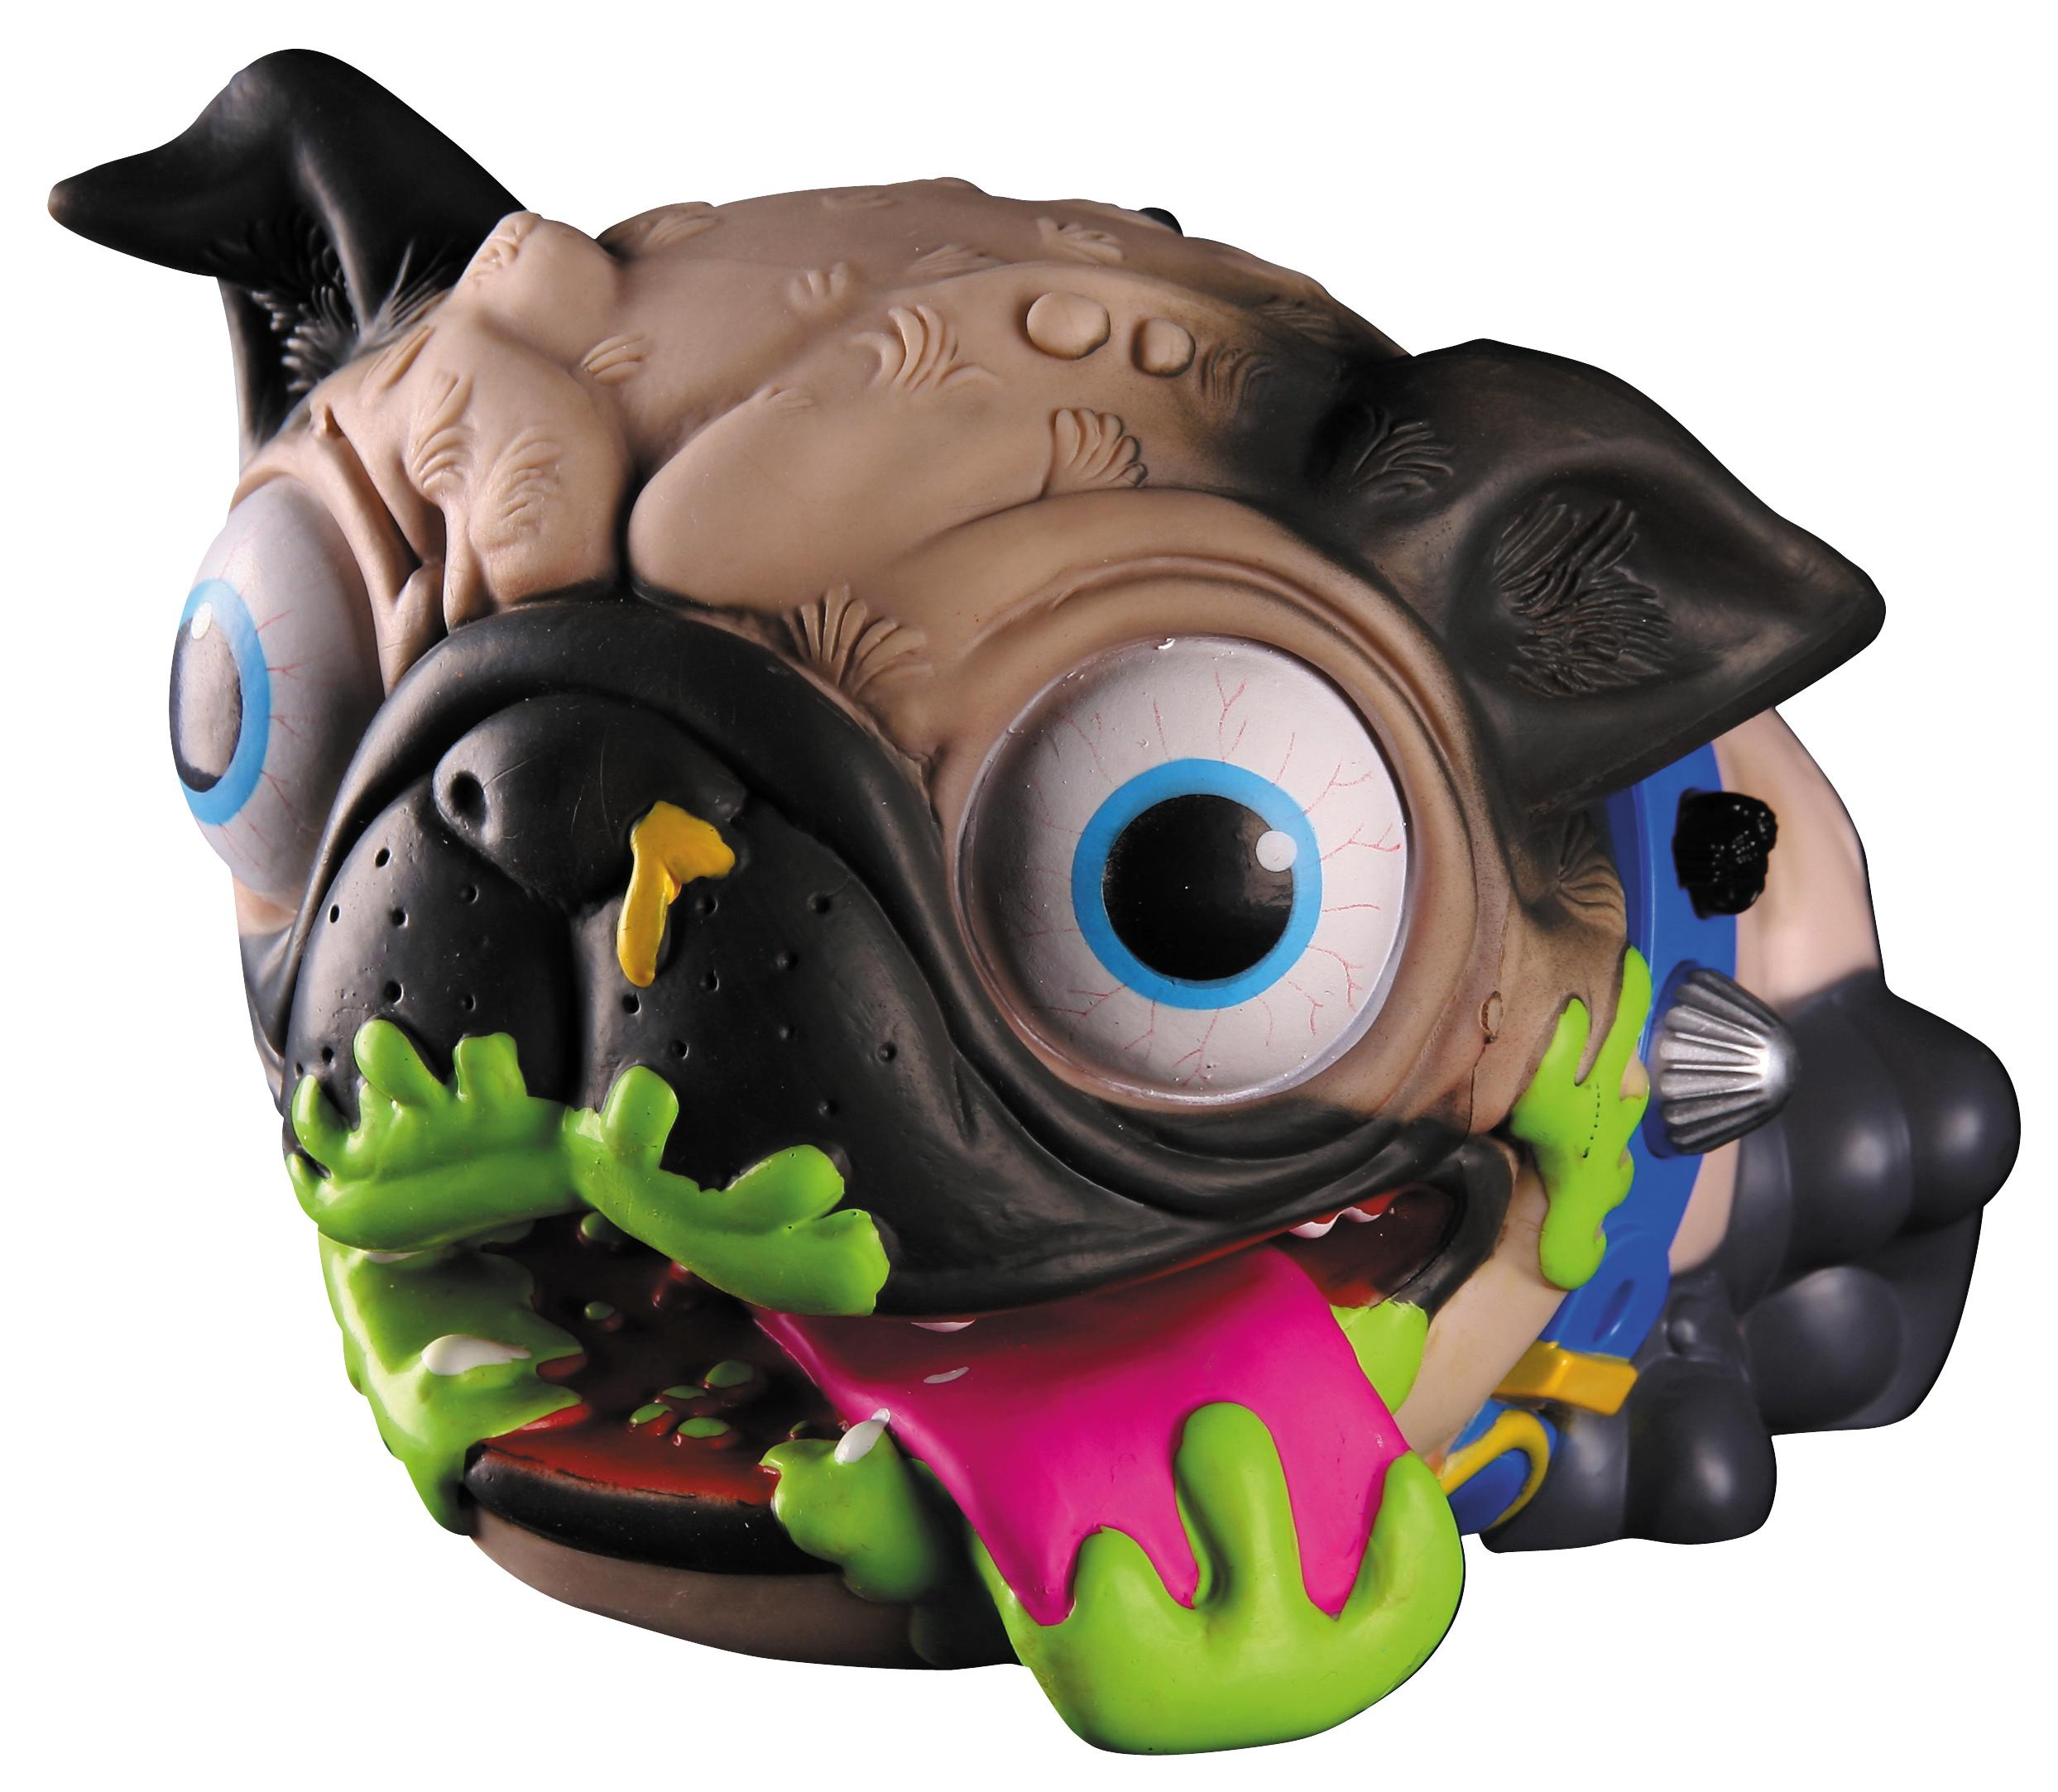 Dog Toy With Fart Noise